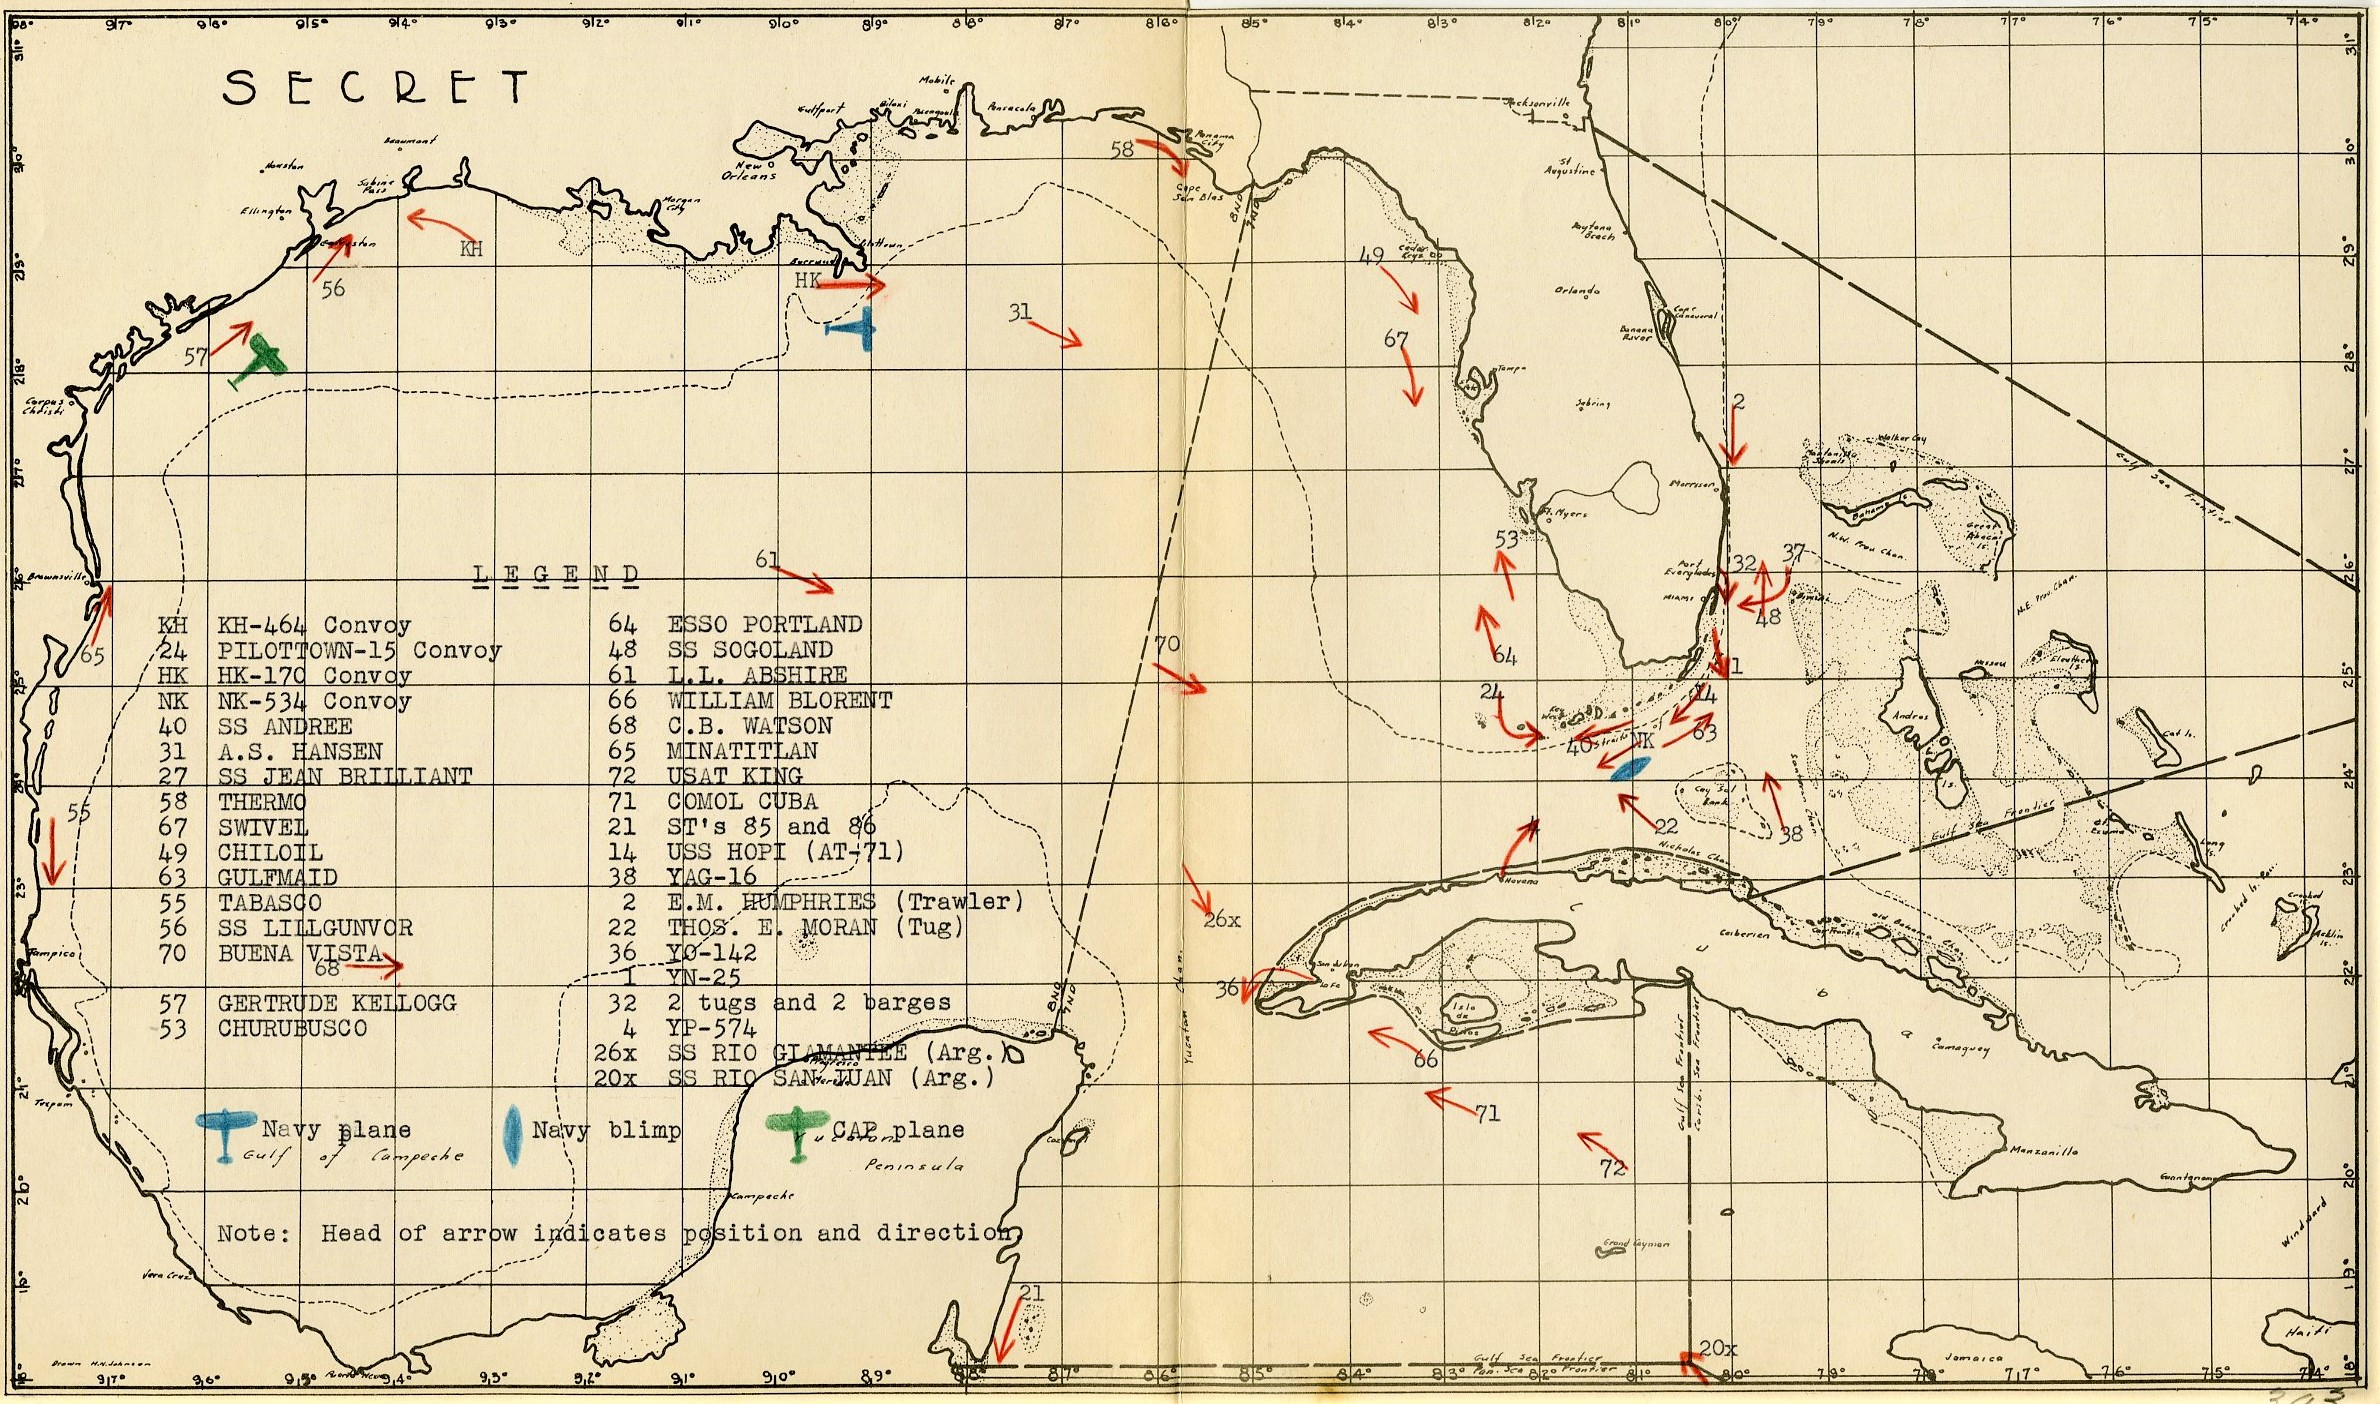 Office of the CNO vessel plot showing locations of merchant and naval vessels and deployed anti-submarine countermeasures in the Gulf of Mexico and Caribbean. (RG38)